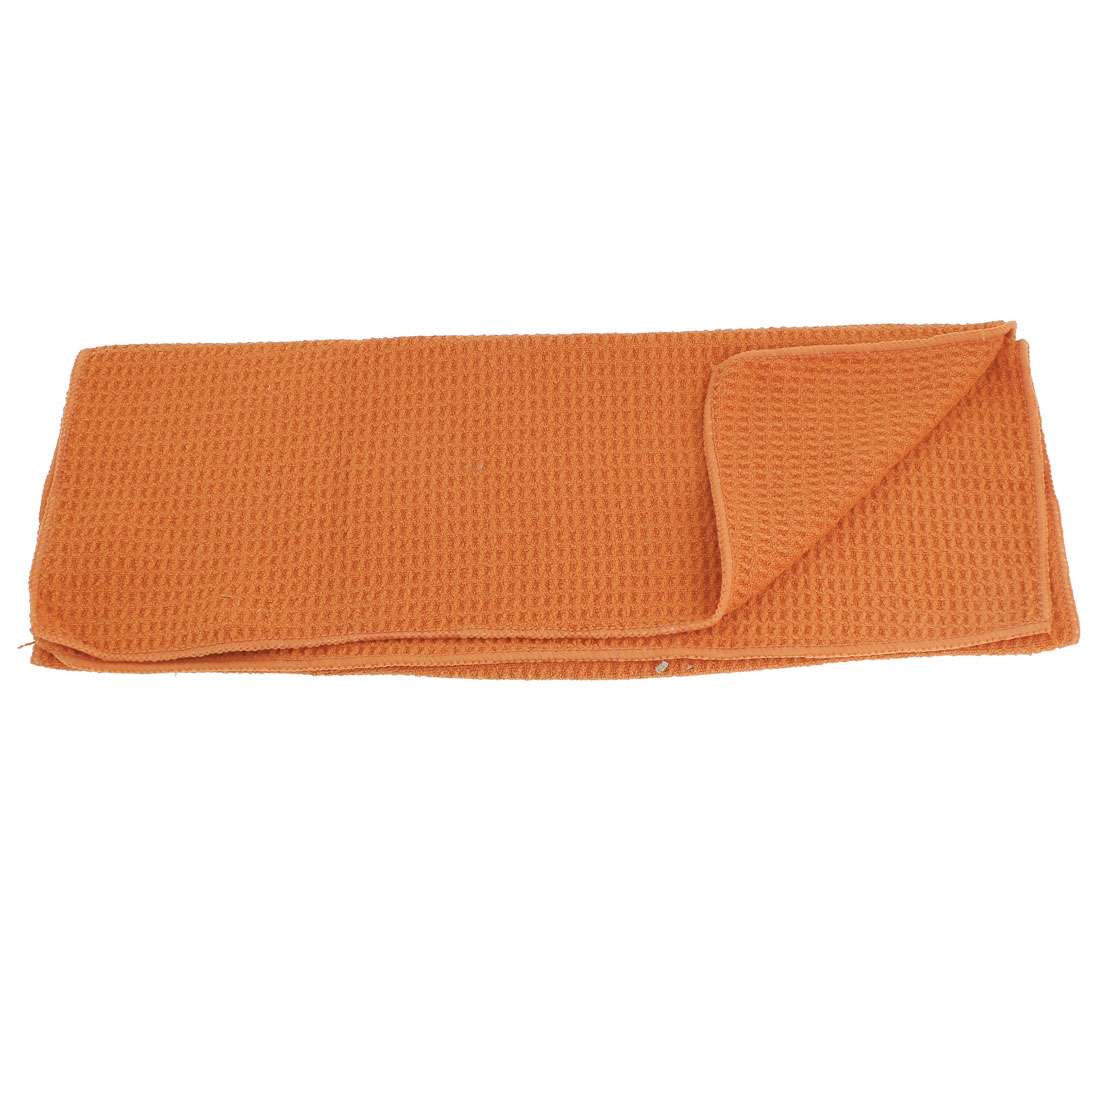 "Rectangle Orange Red 25.2"" x 17"" Microfiber Towel Cleaning Cloth for Car"